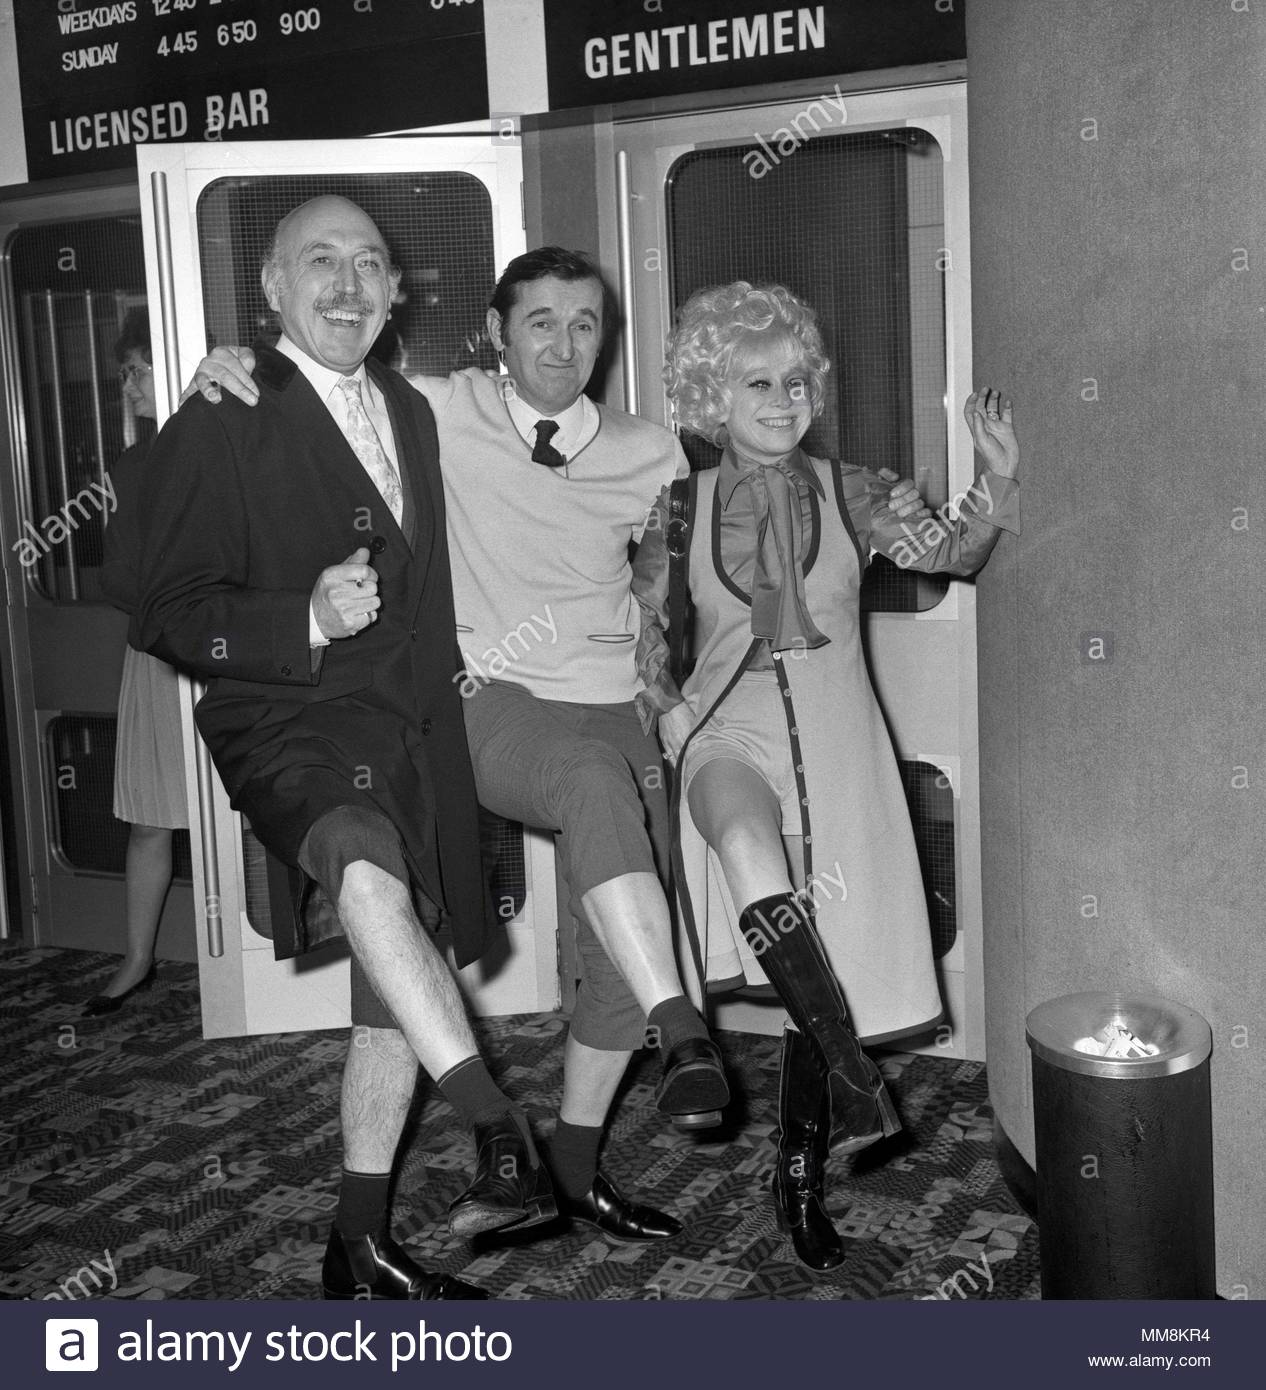 File photo dated 11/02/1971 of EastEnders and Carry On actress Barbara Windsor (right) who, her husband says, has been diagnosed with Alzheimer's, with Lionel Jeffries and Graham Stark the premiere of the film 'Percy' at ABC1, Shaftesbury Avenue, central London. - Stock Image